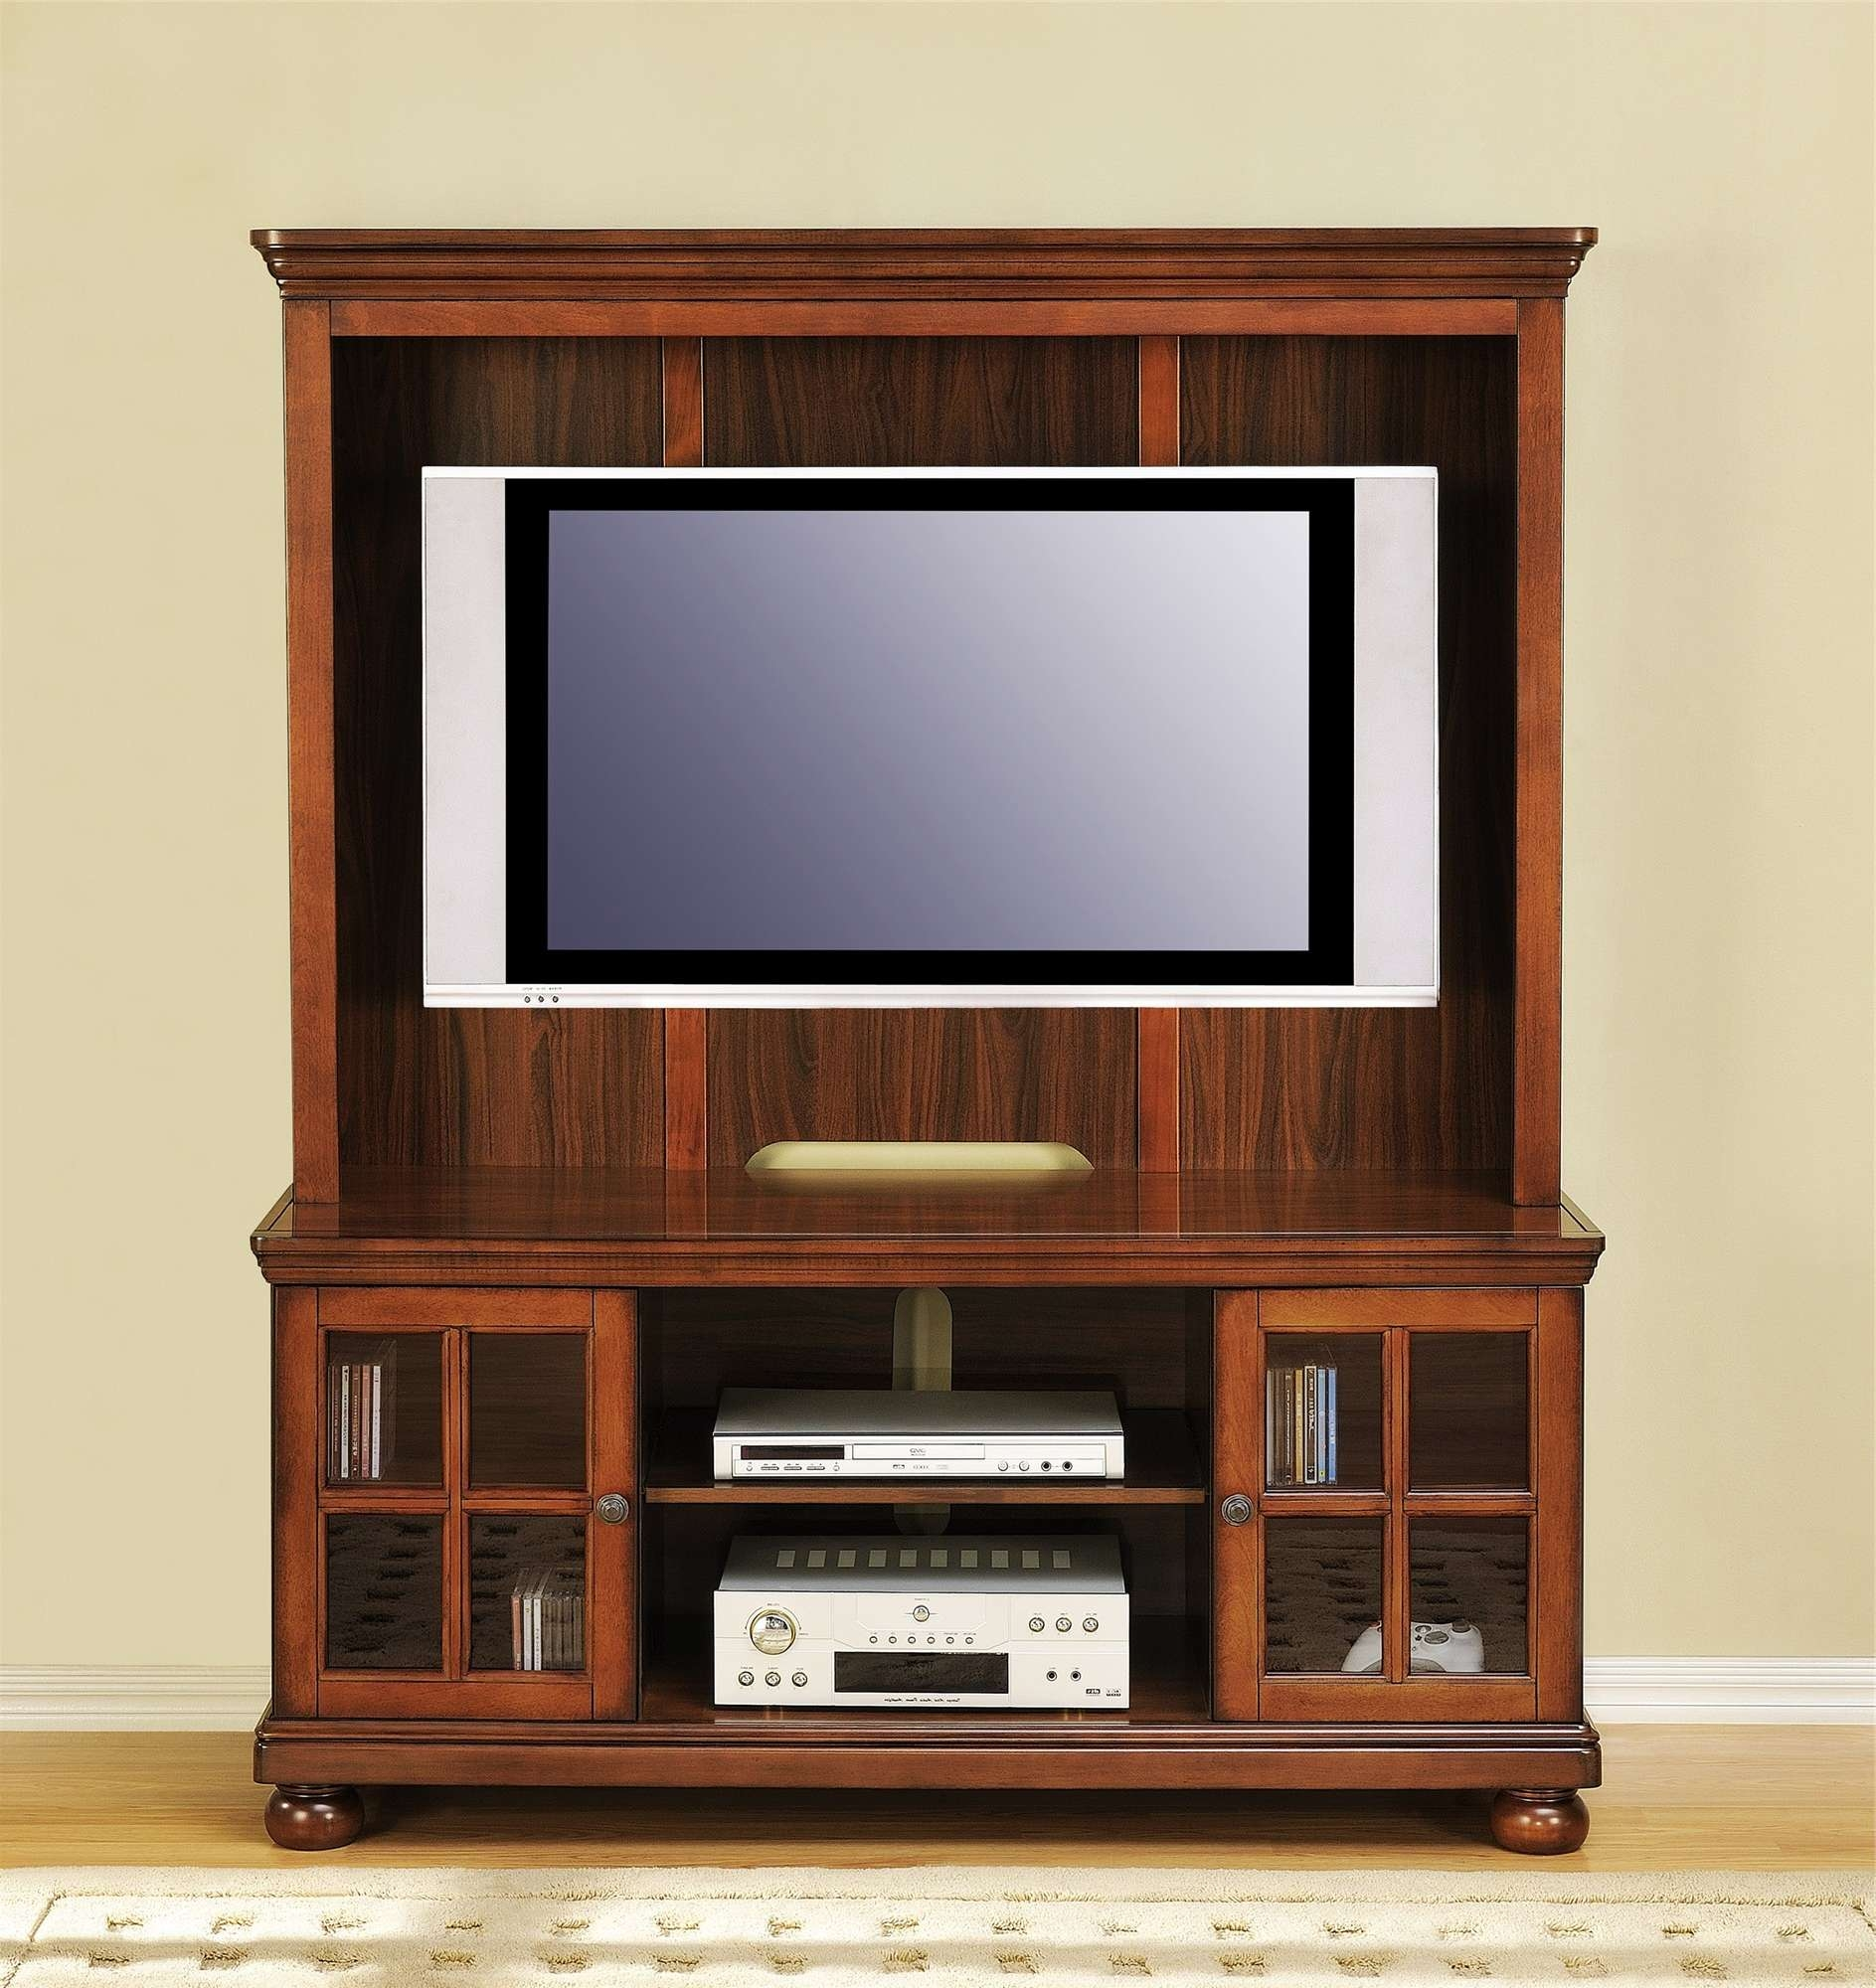 Brown Wooden Tv Cabinet With Glass Frosted Doors On The Floor Within Wooden Tv Cabinets With Glass Doors (View 1 of 20)